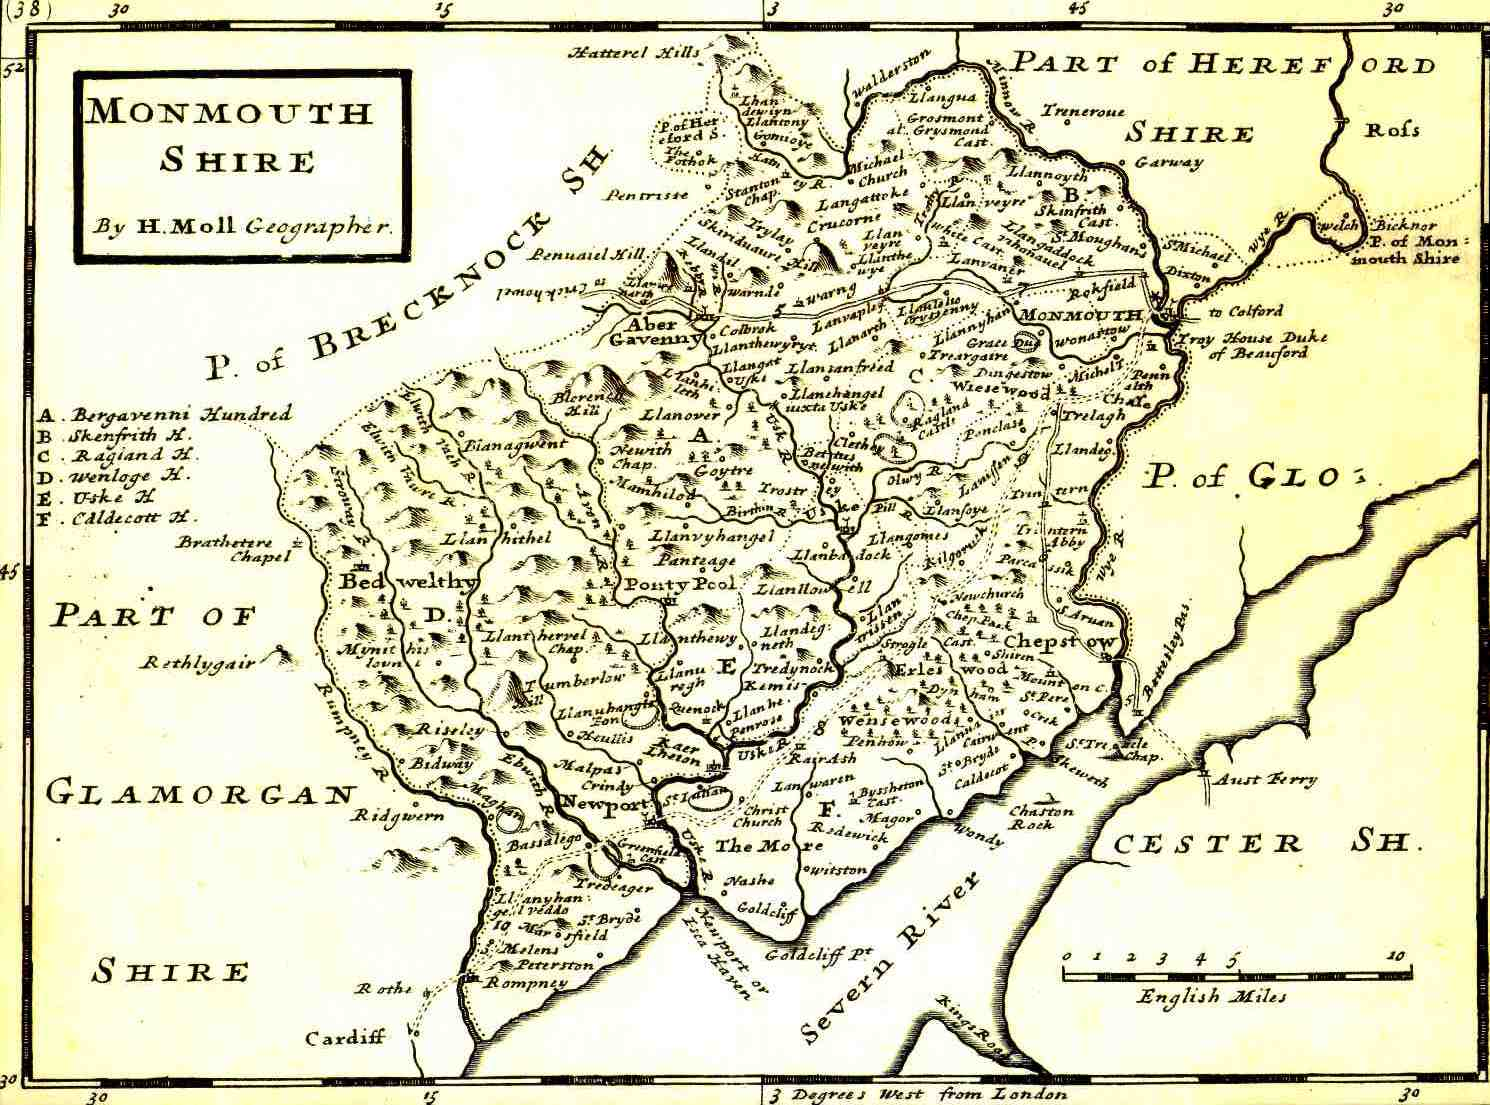 <strong>Monmouthshire in 1724</strong><br /> Map of Monmouthshire in 1724 by Herman Moll.